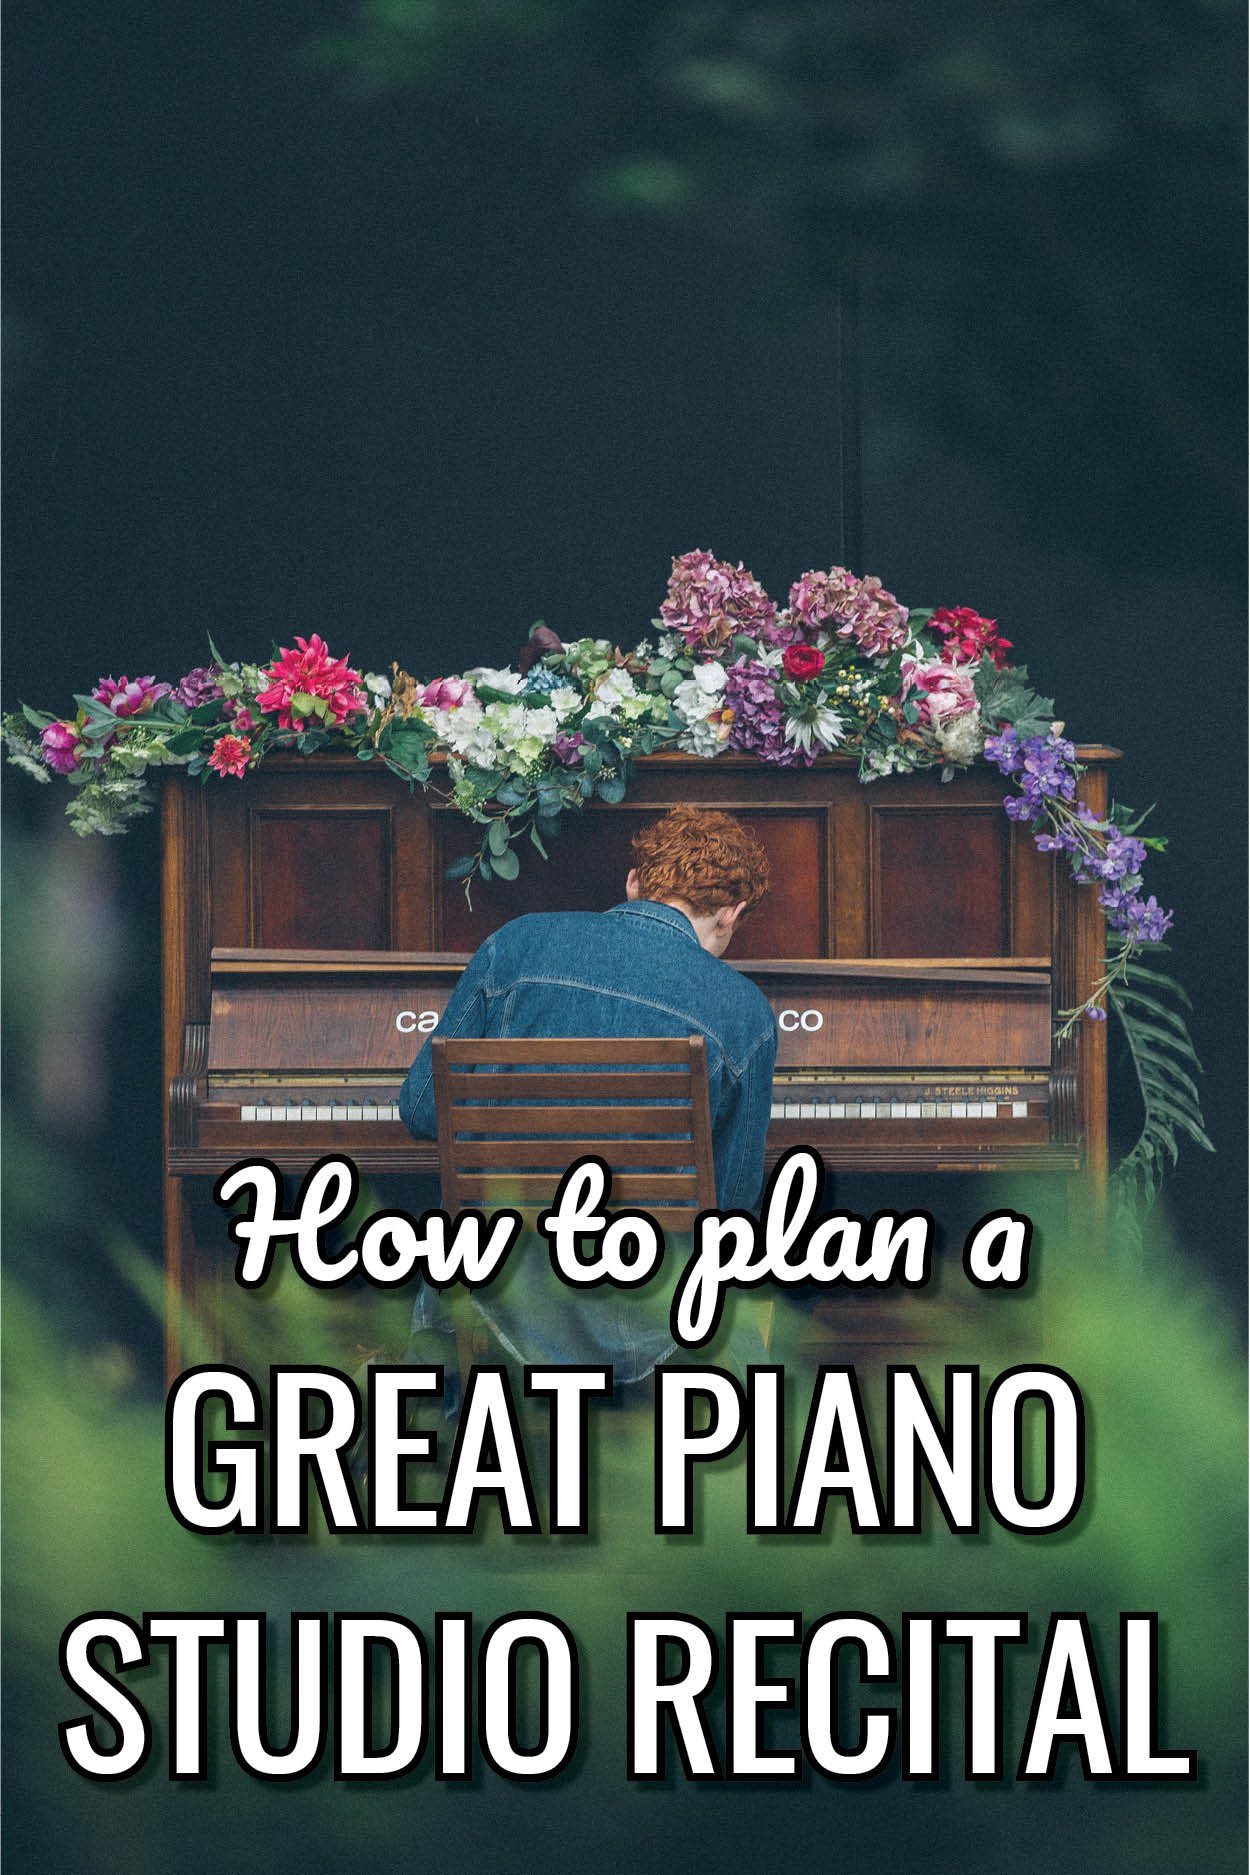 How to have a fantastic recital in your piano teaching studio, without stressing!